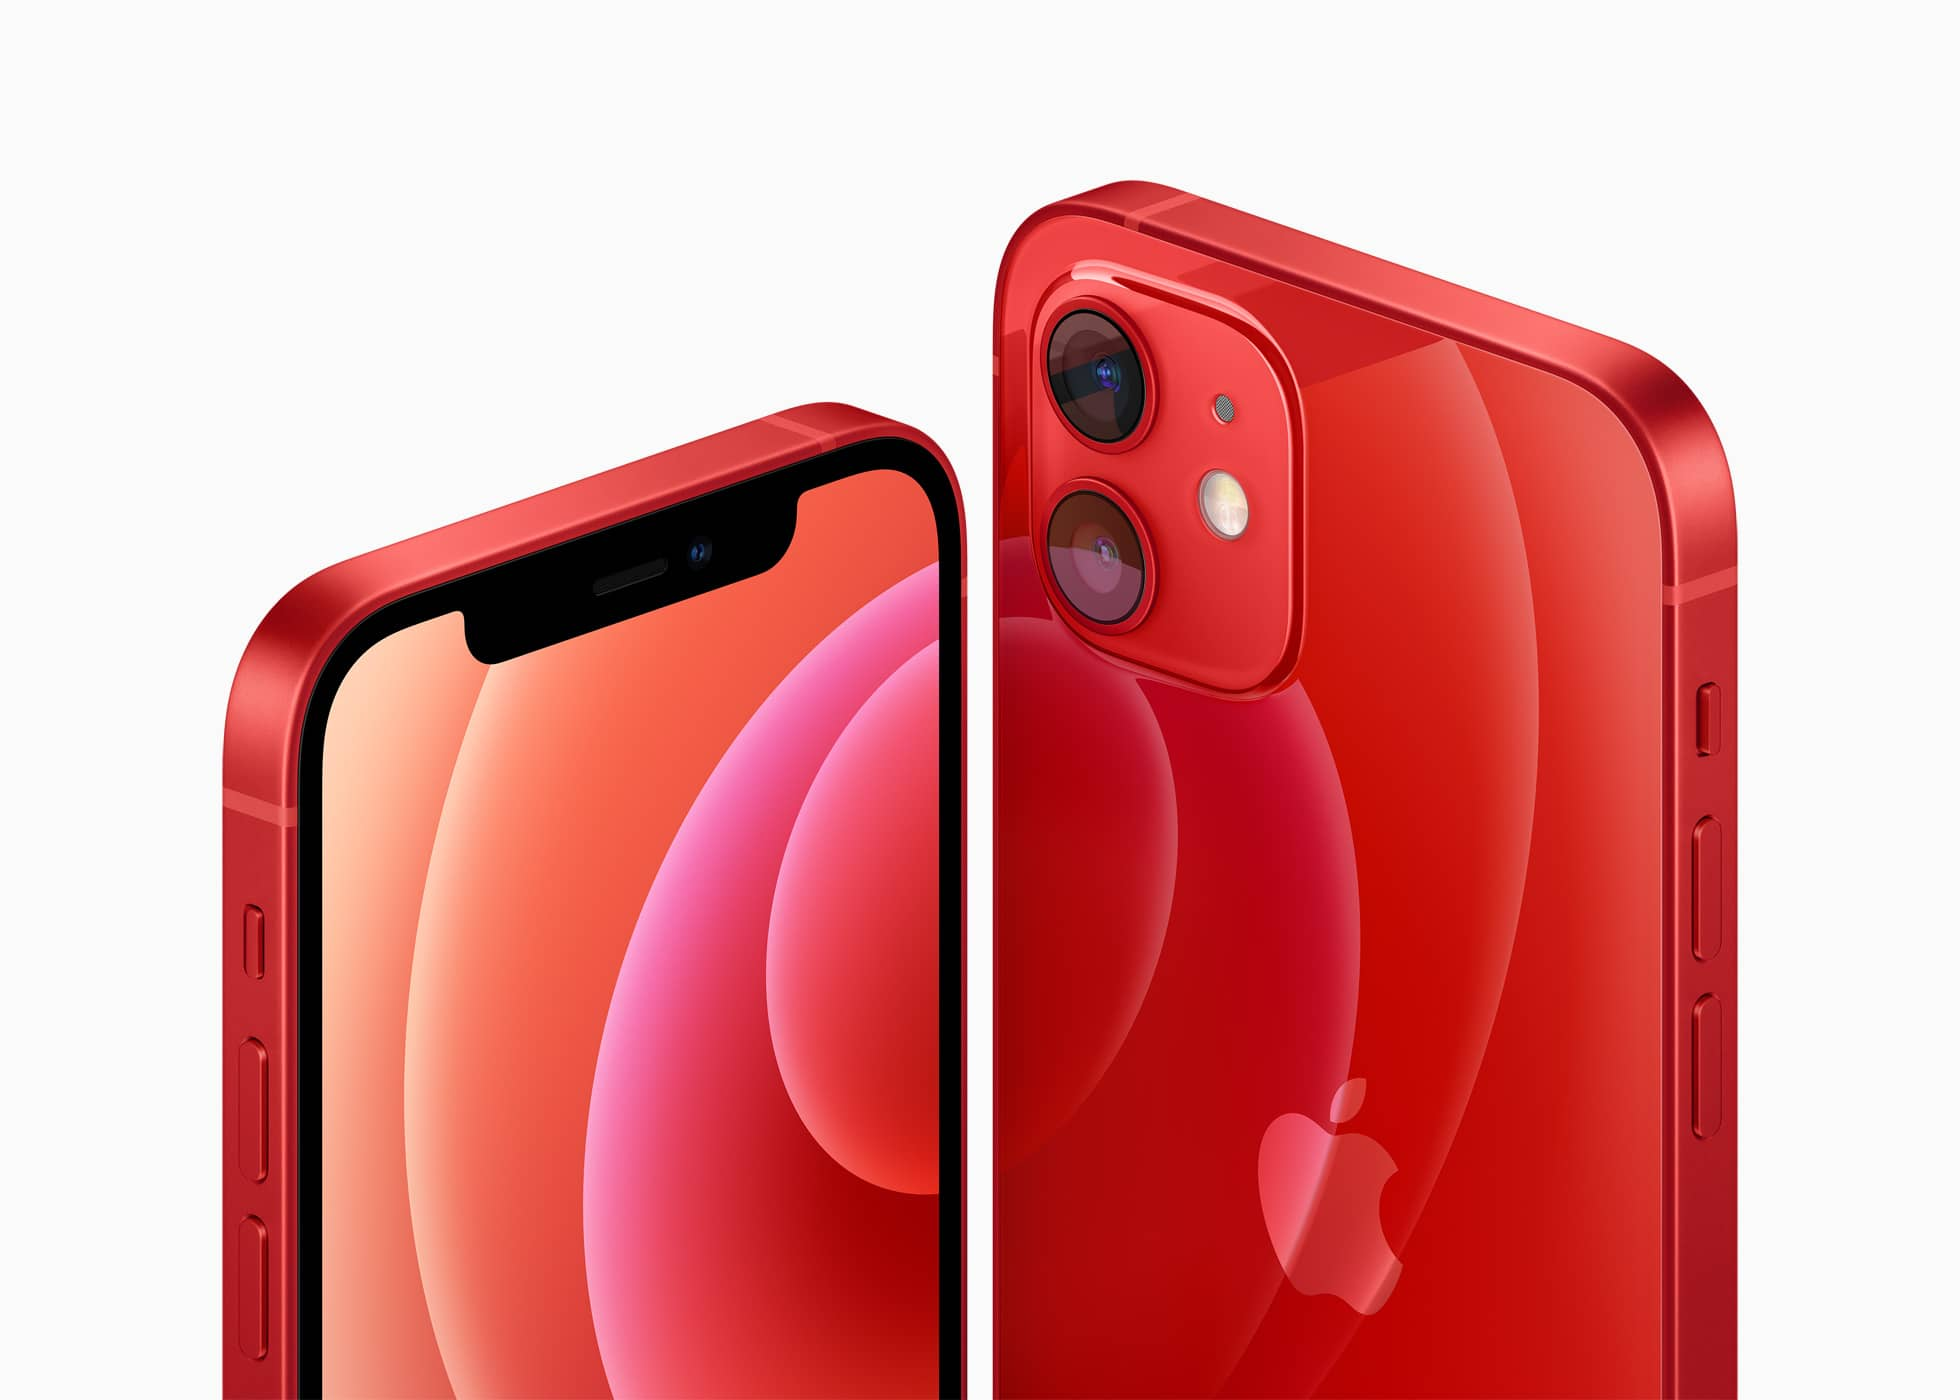 apple iphone 12 color red 10132020